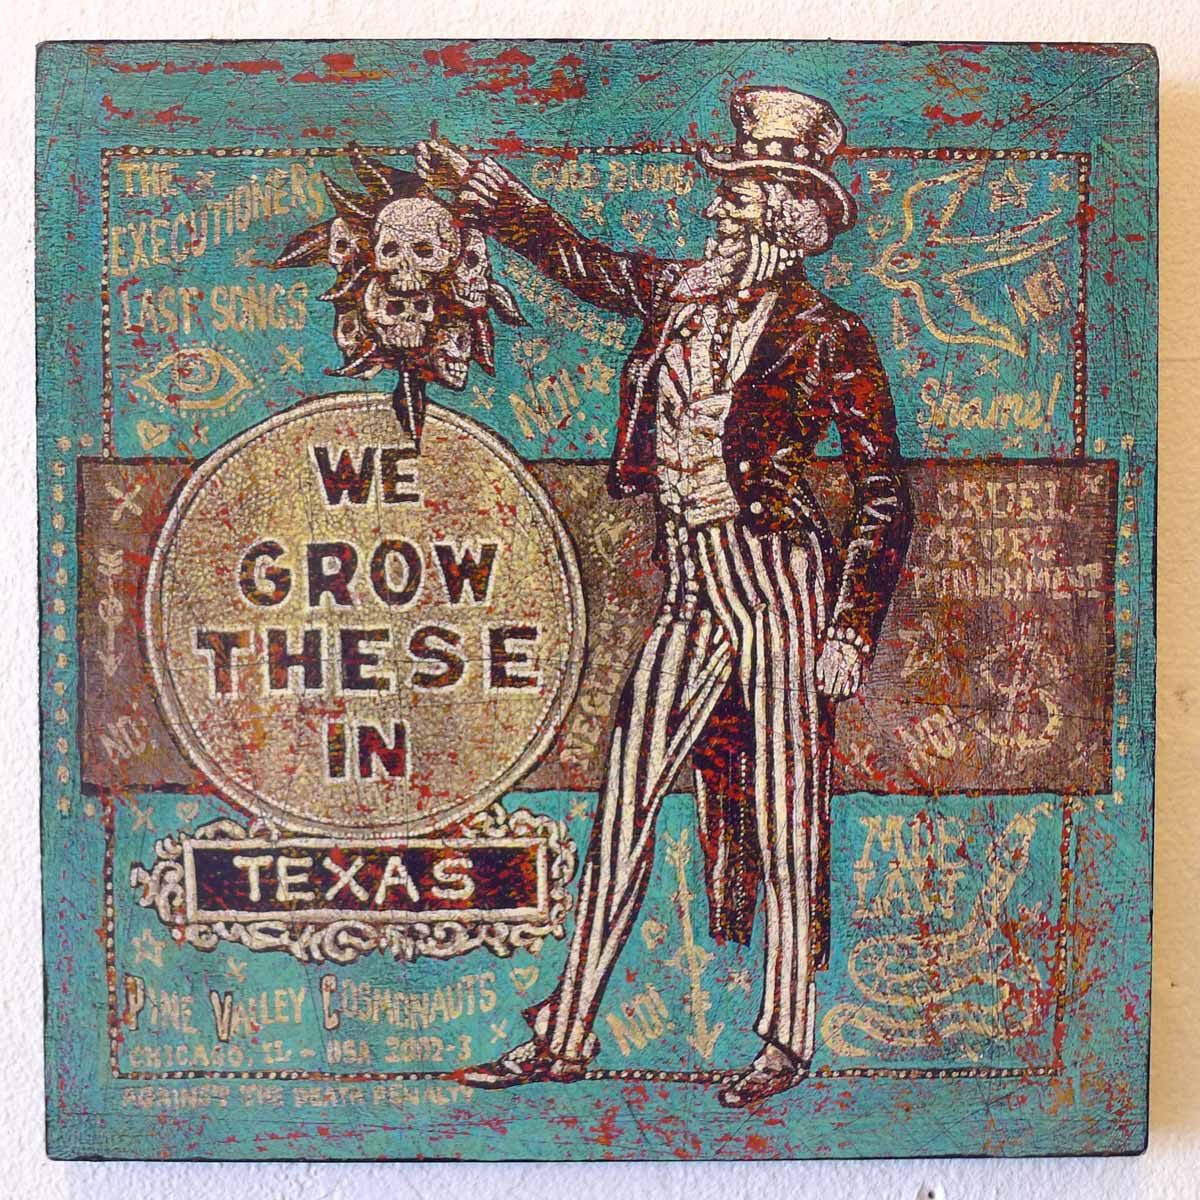 We Grow These - Jon Langford - Yard Dog Art